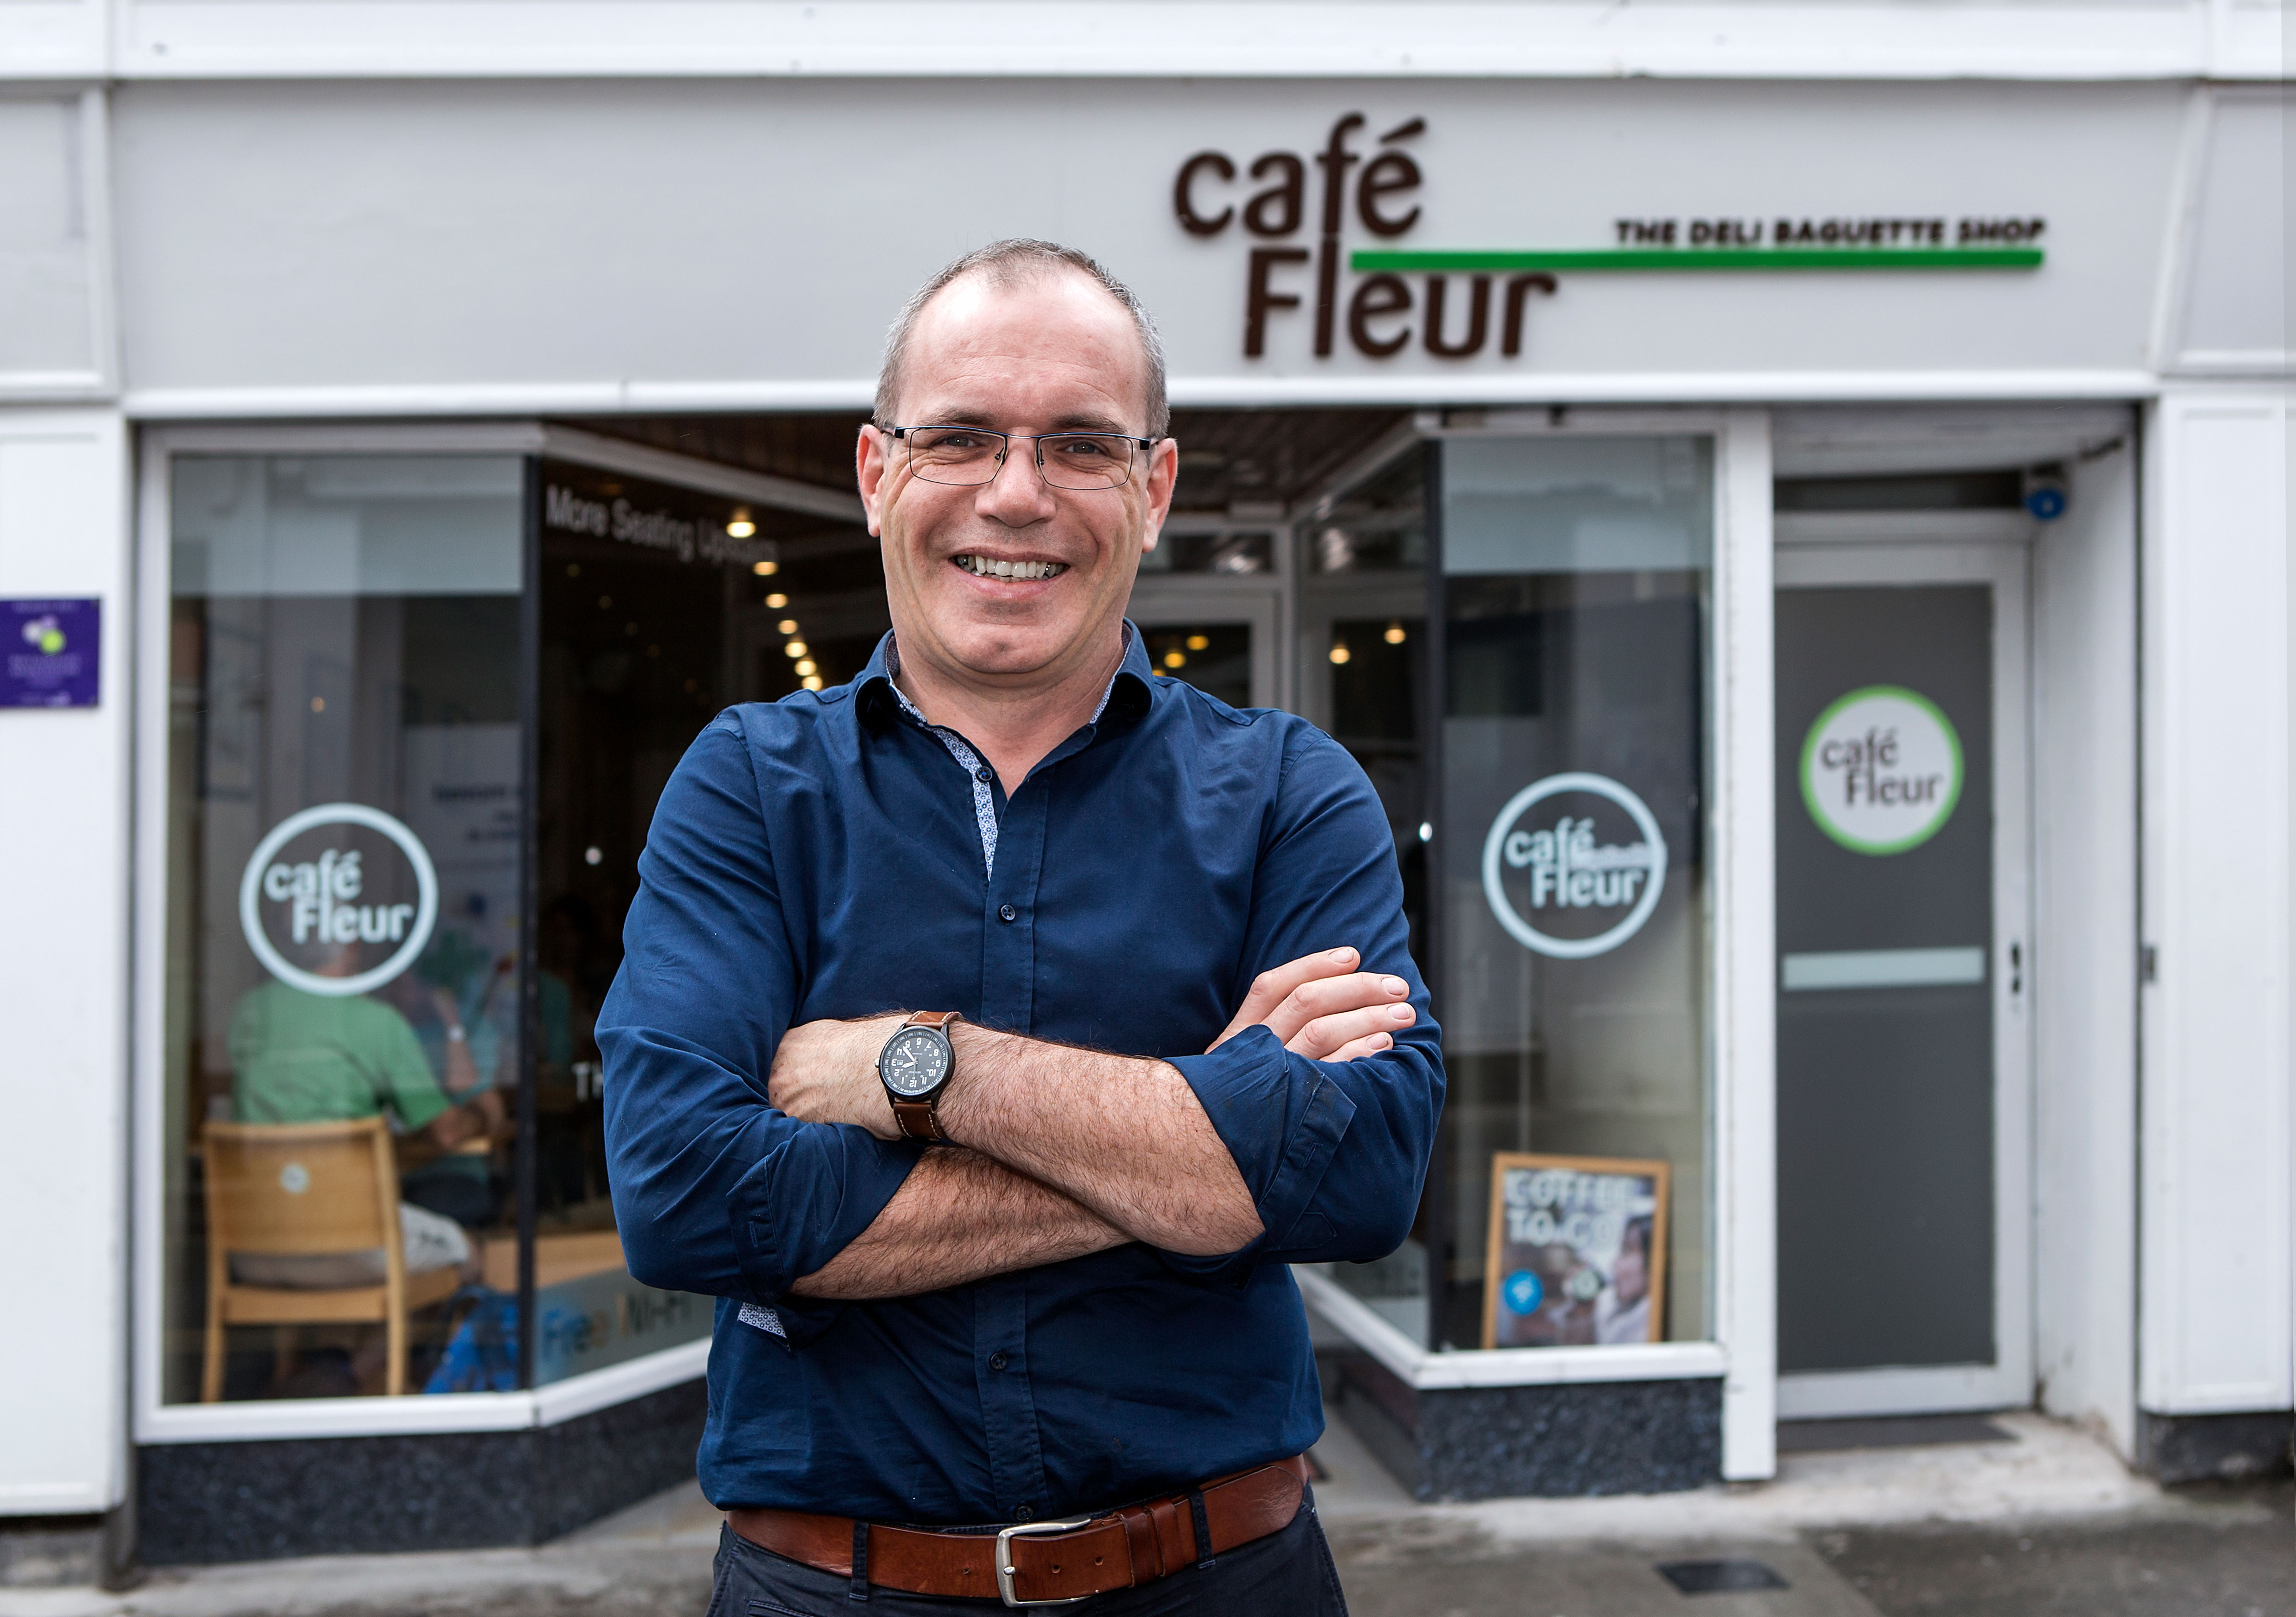 Faces of the Sligo Food Trail: Des Faul, Café Fleur